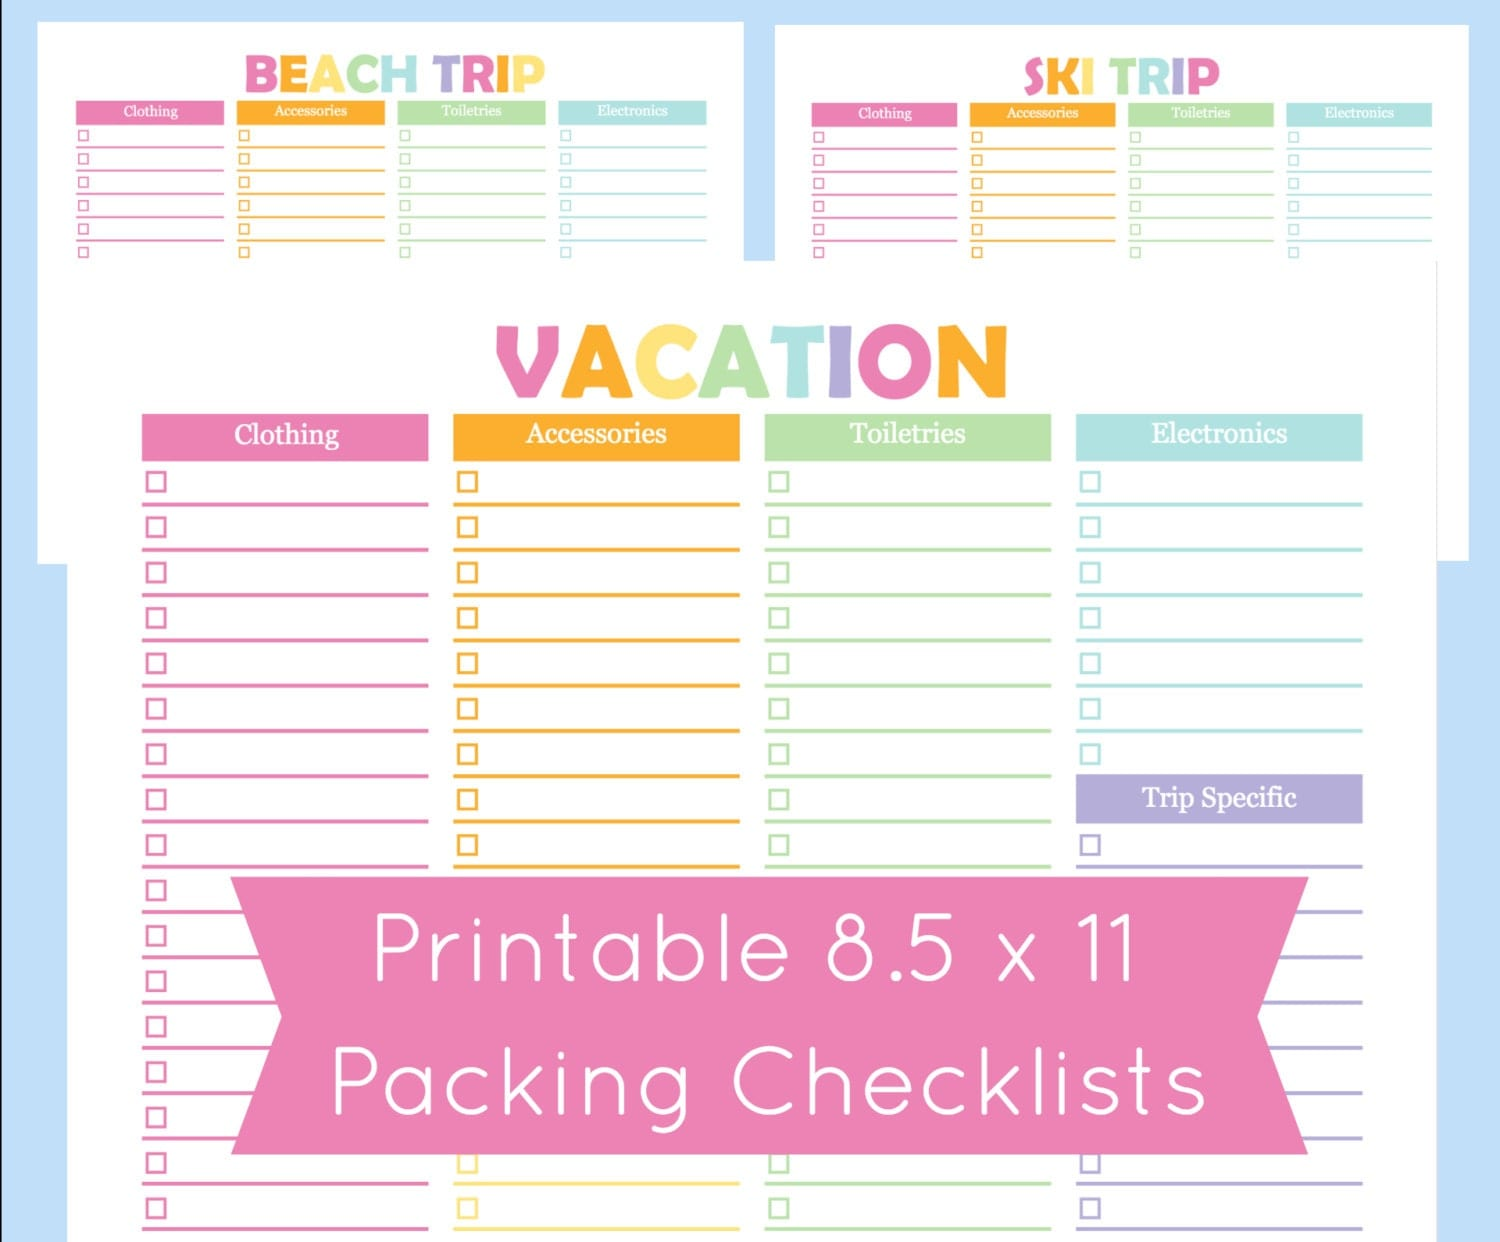 Great vacation list template images gallery vacation packing list travel checklist puttesradio tk vacation list template maxwellsz